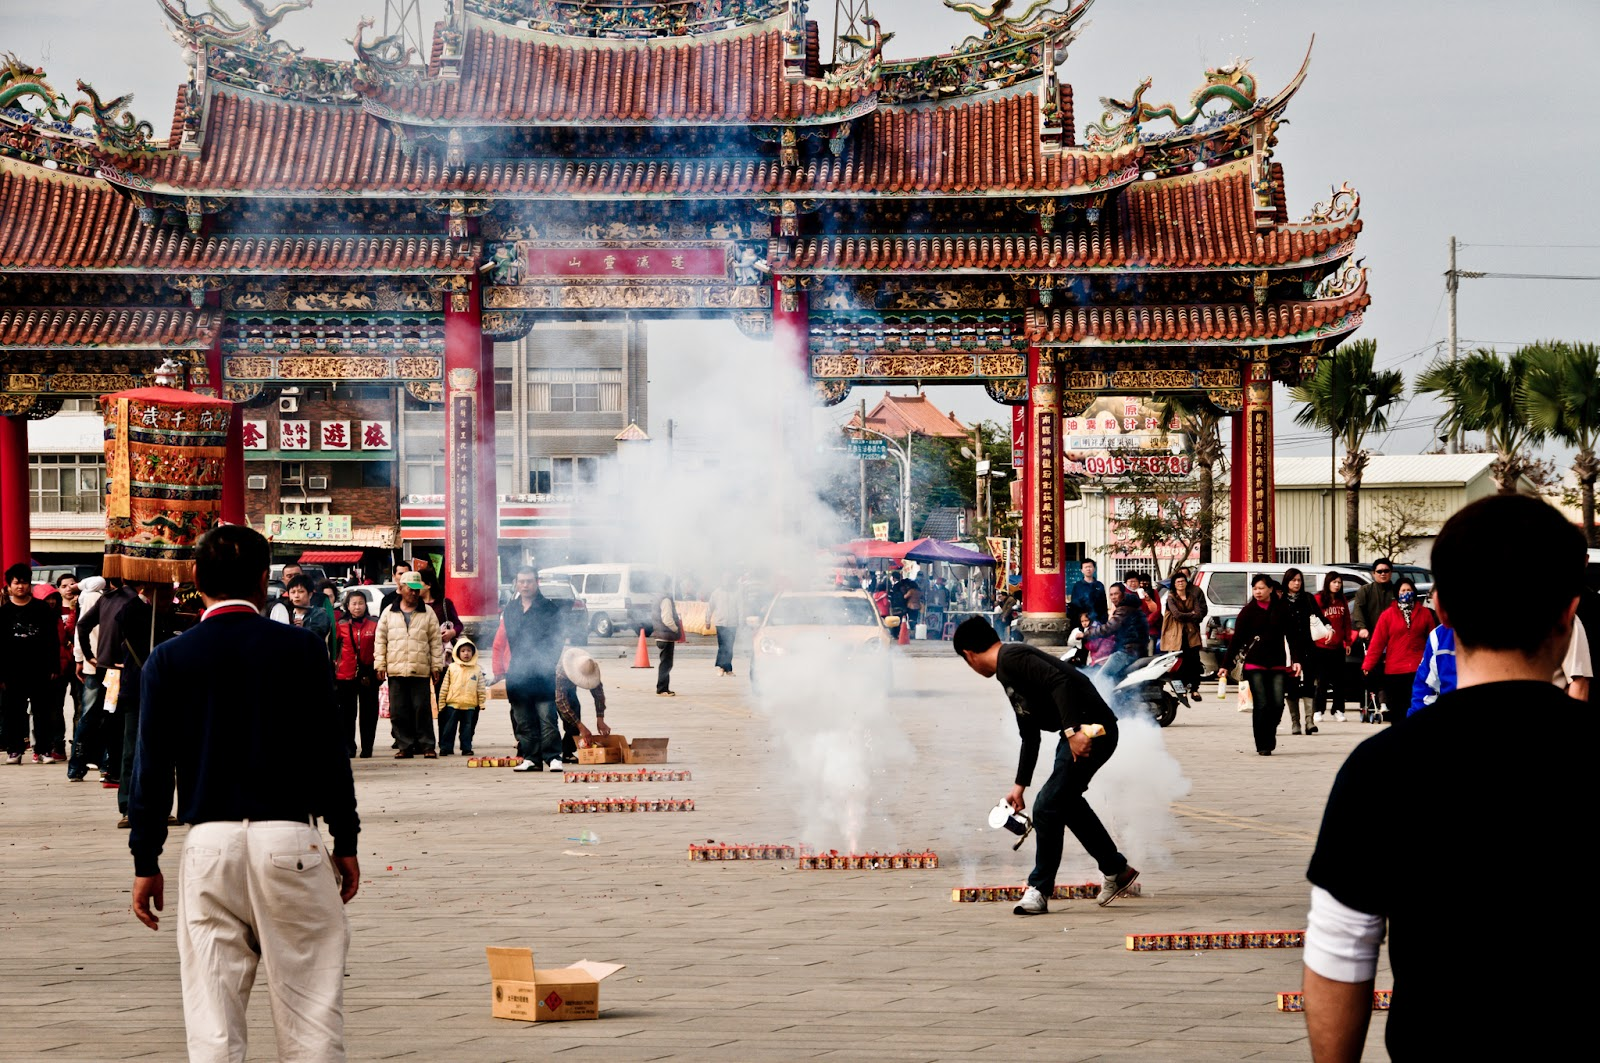 Fire Crackers outside the Taitan Temple of Nan Kun Shen